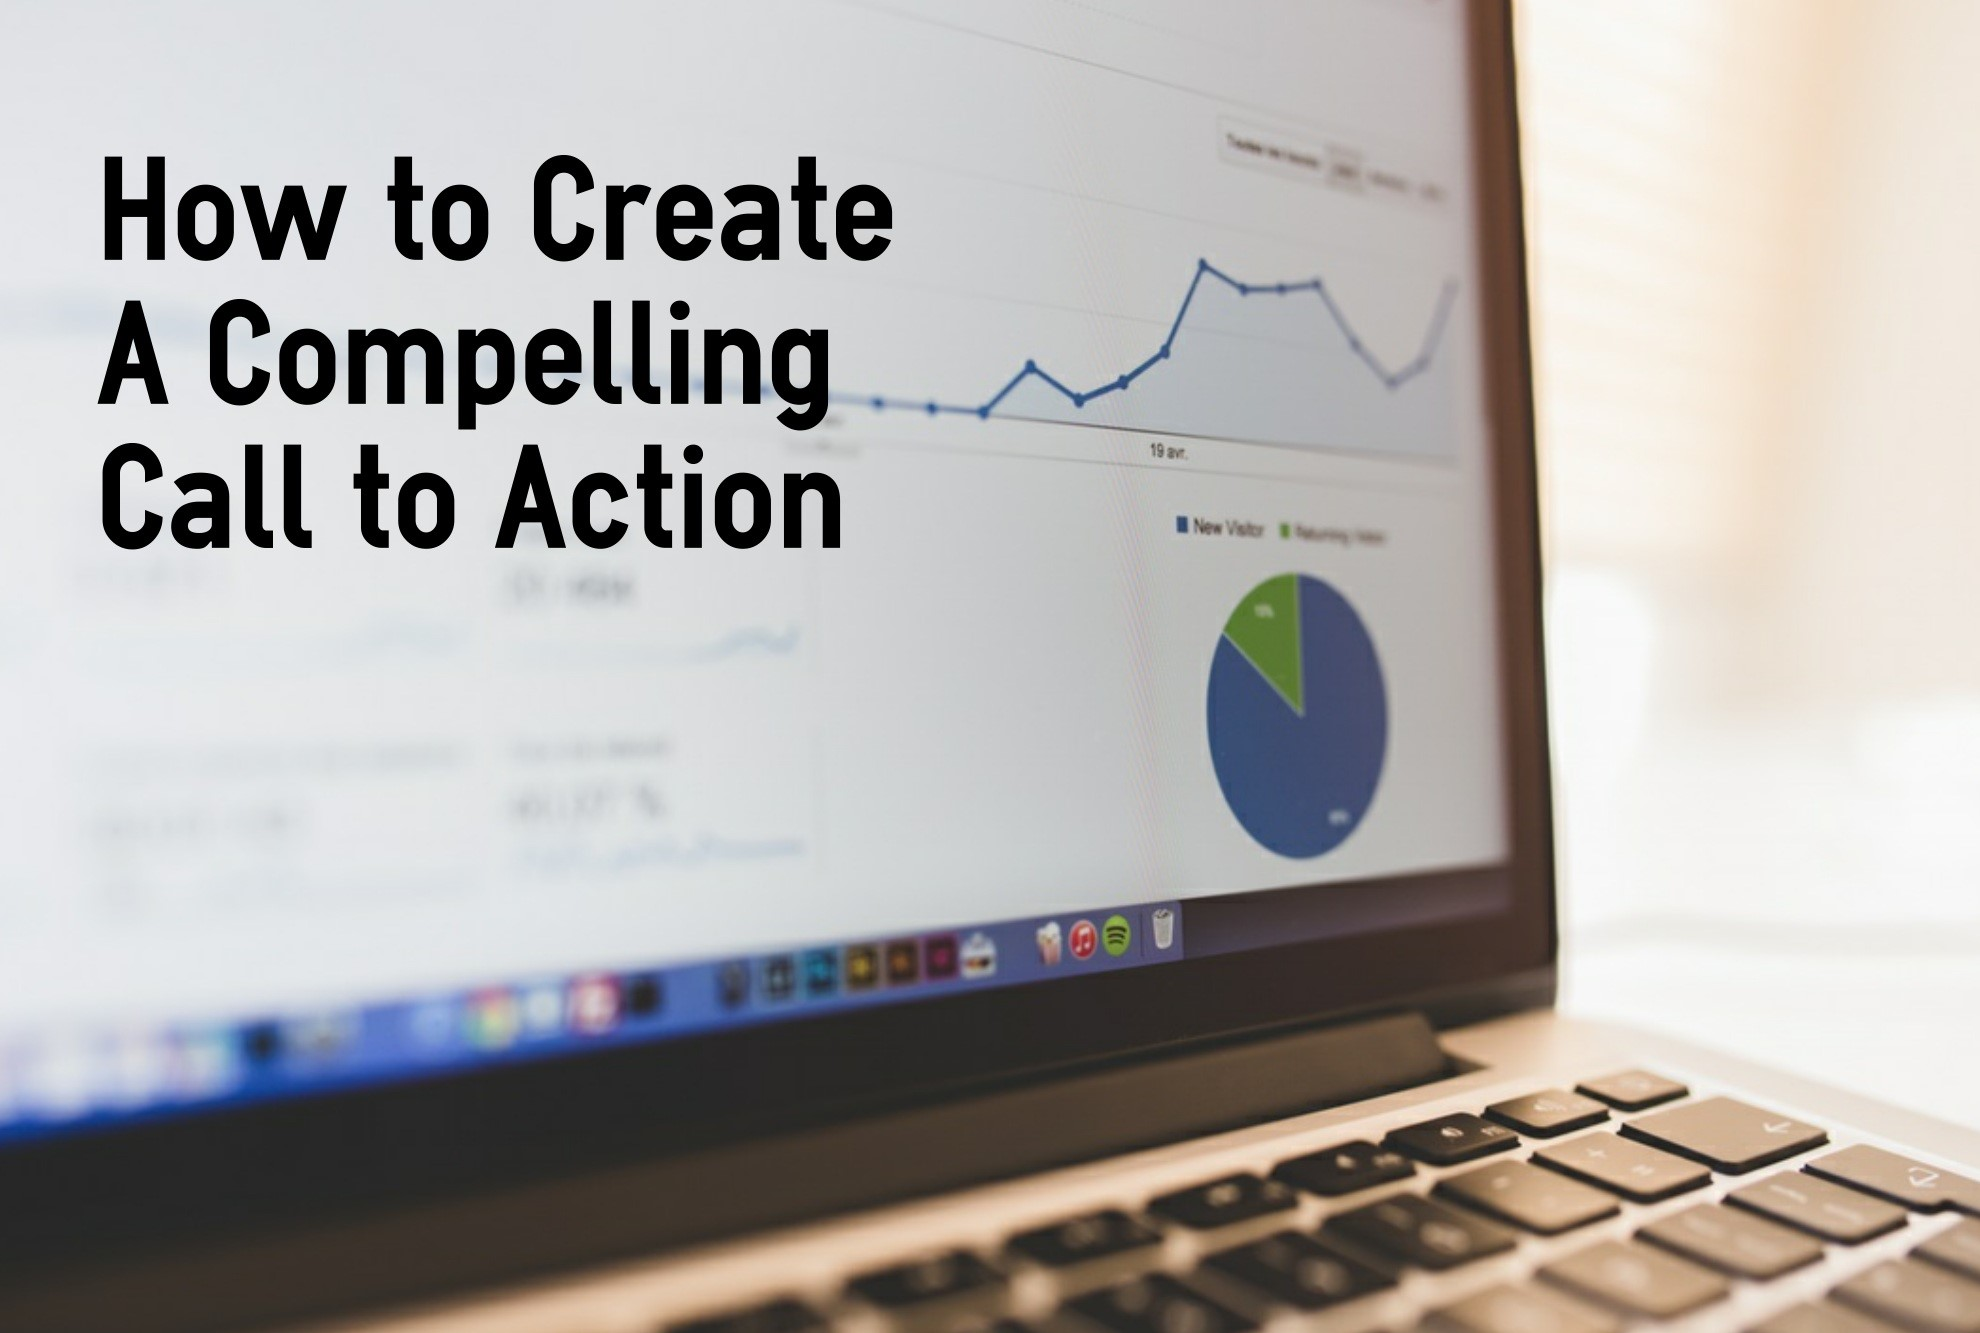 How to Create A Compelling Call to Action